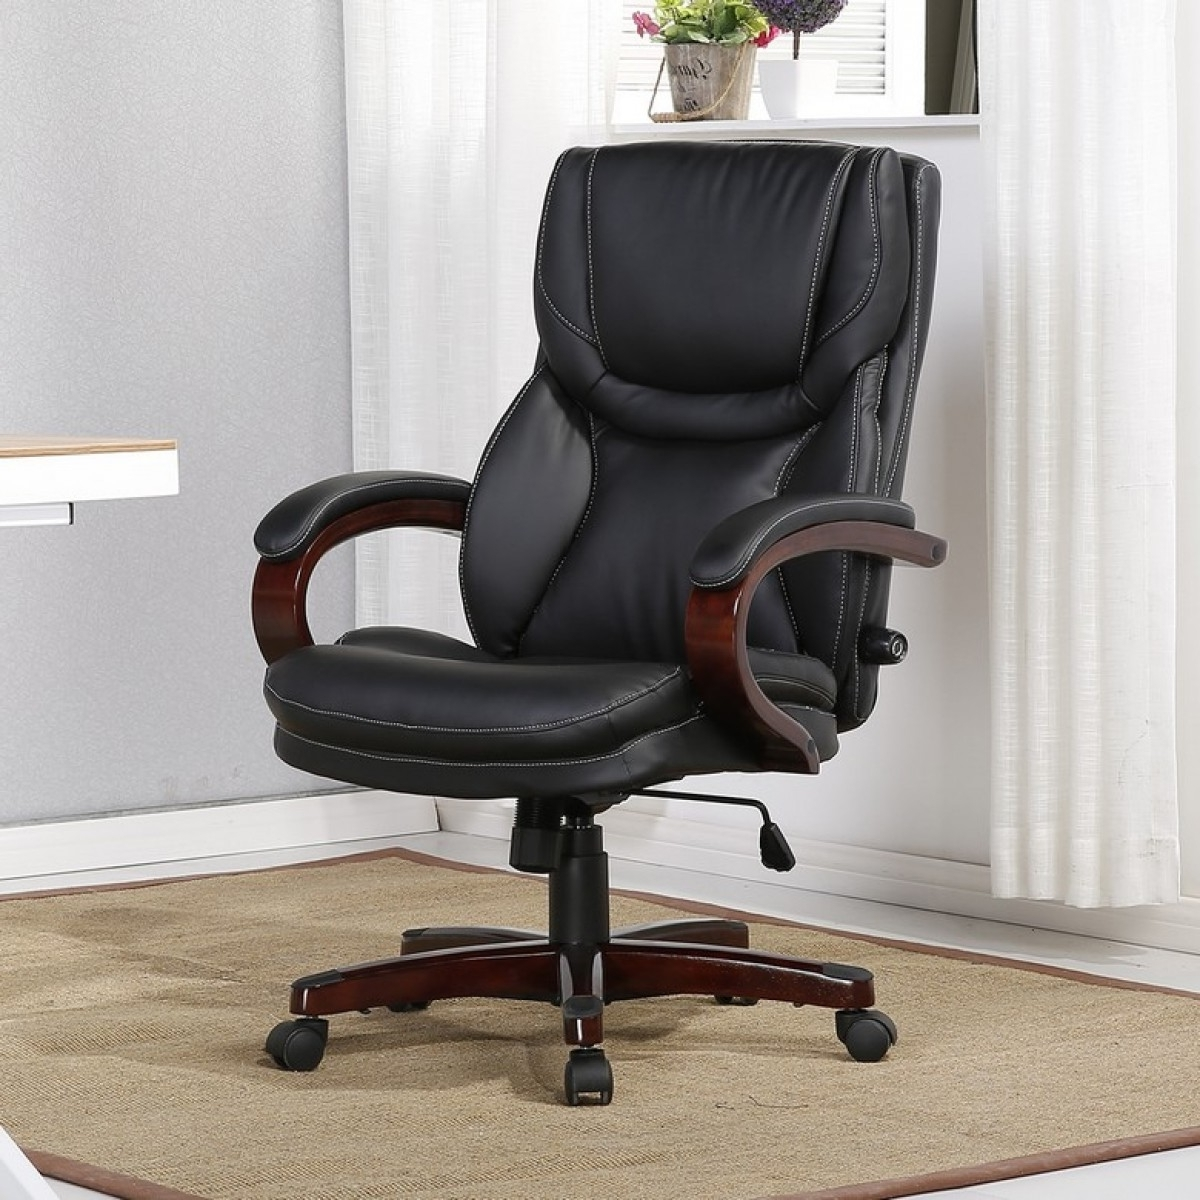 Executive Office Swivel Chairs For Popular Executive Office Desk Chair Seats W/adjustable Lumbar Support Back (View 13 of 20)